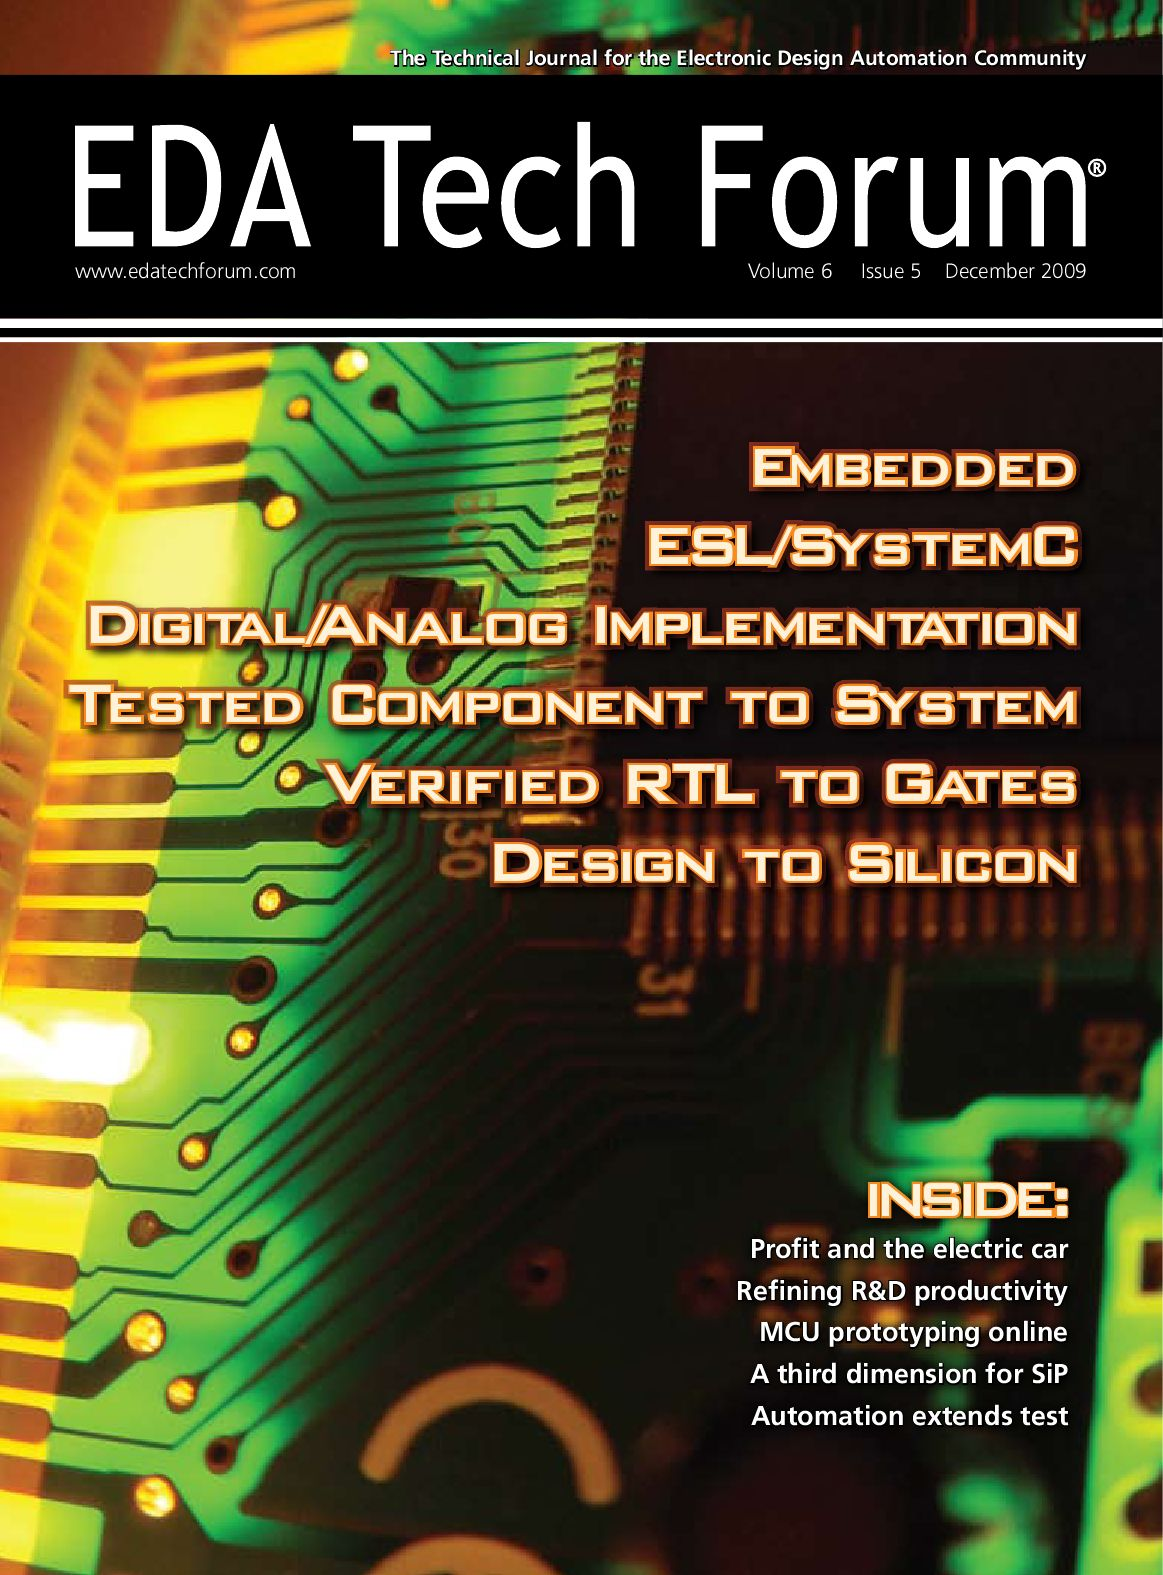 Eda Tech Forum Journal By Rtc Media Issuu